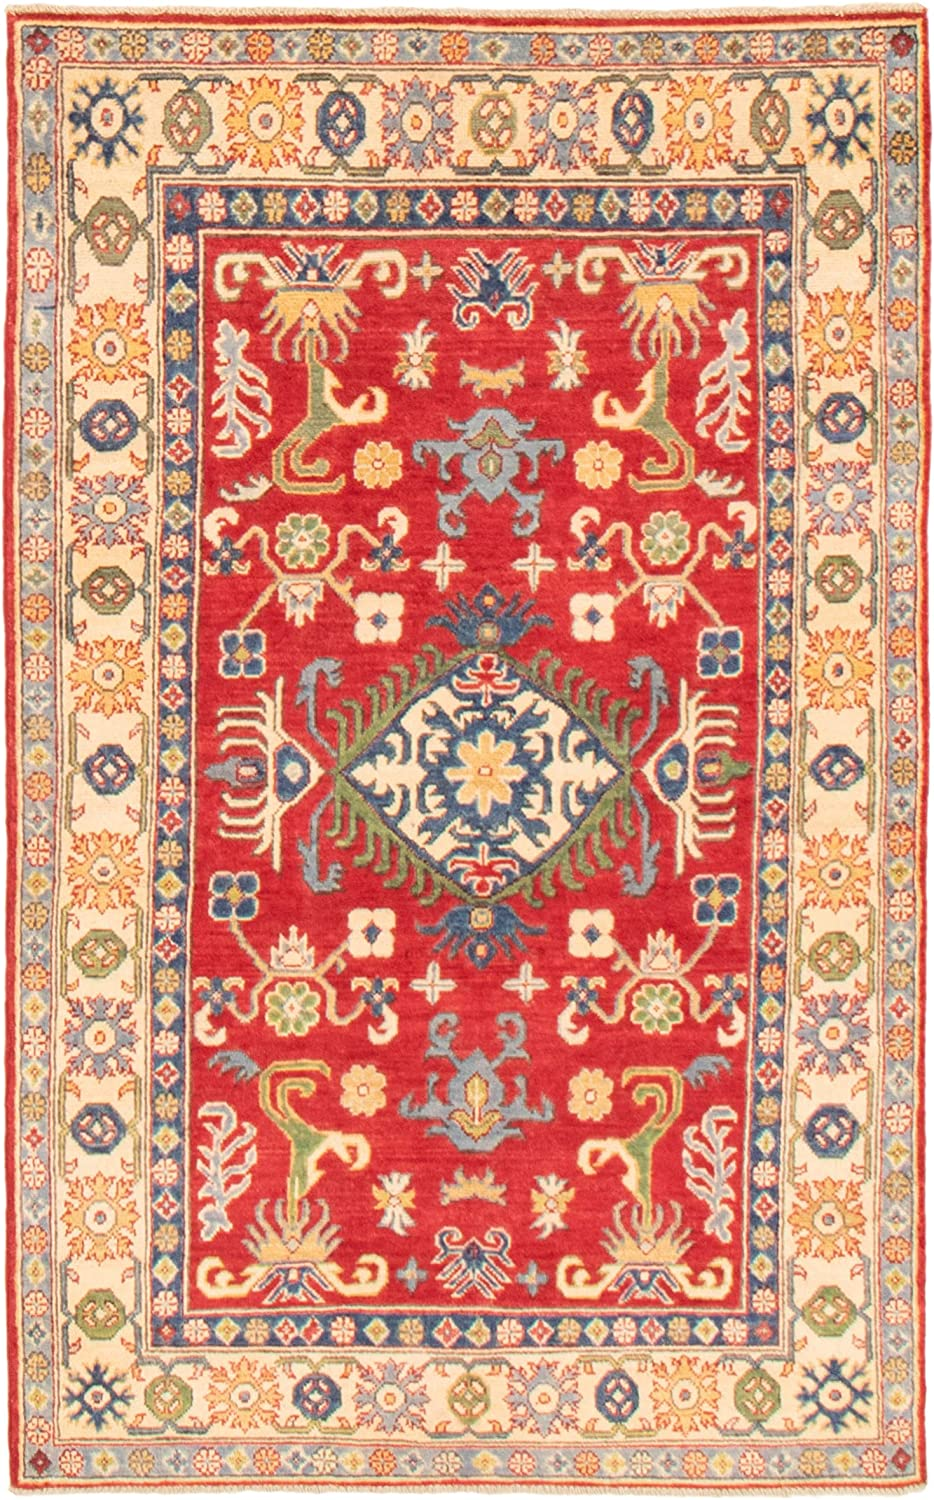 eCarpet Gallery Area Rug for Room Purchase San Francisco Mall Bedroom Living Hand-Knotted